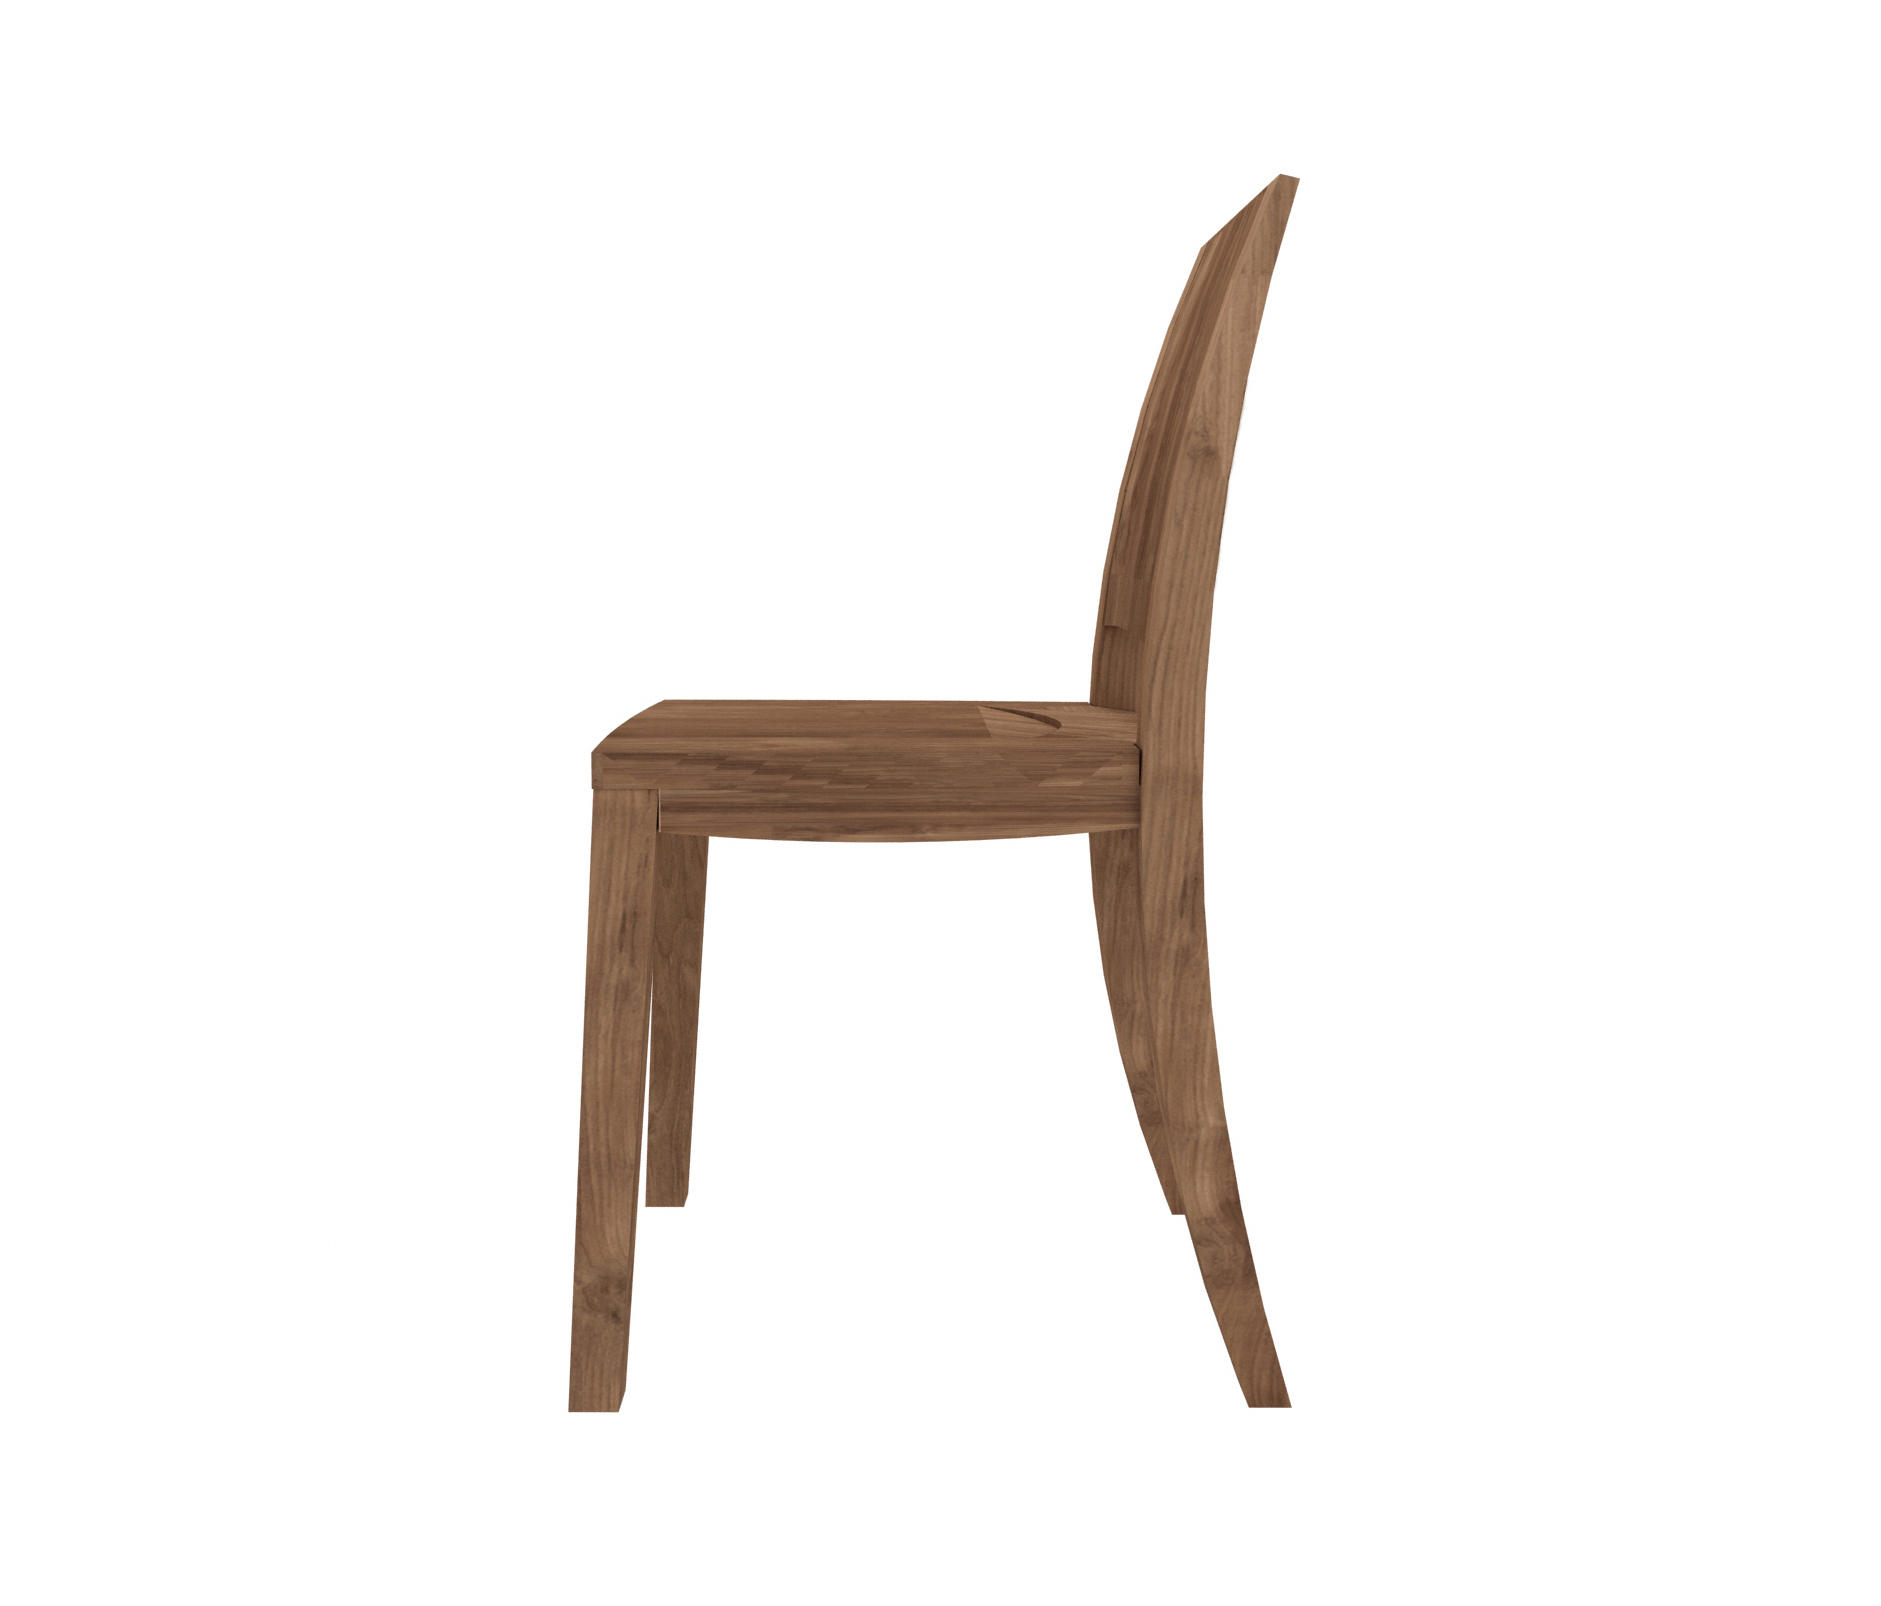 archetype furniture. teak archetype chair by ethnicraft restaurant chairs furniture